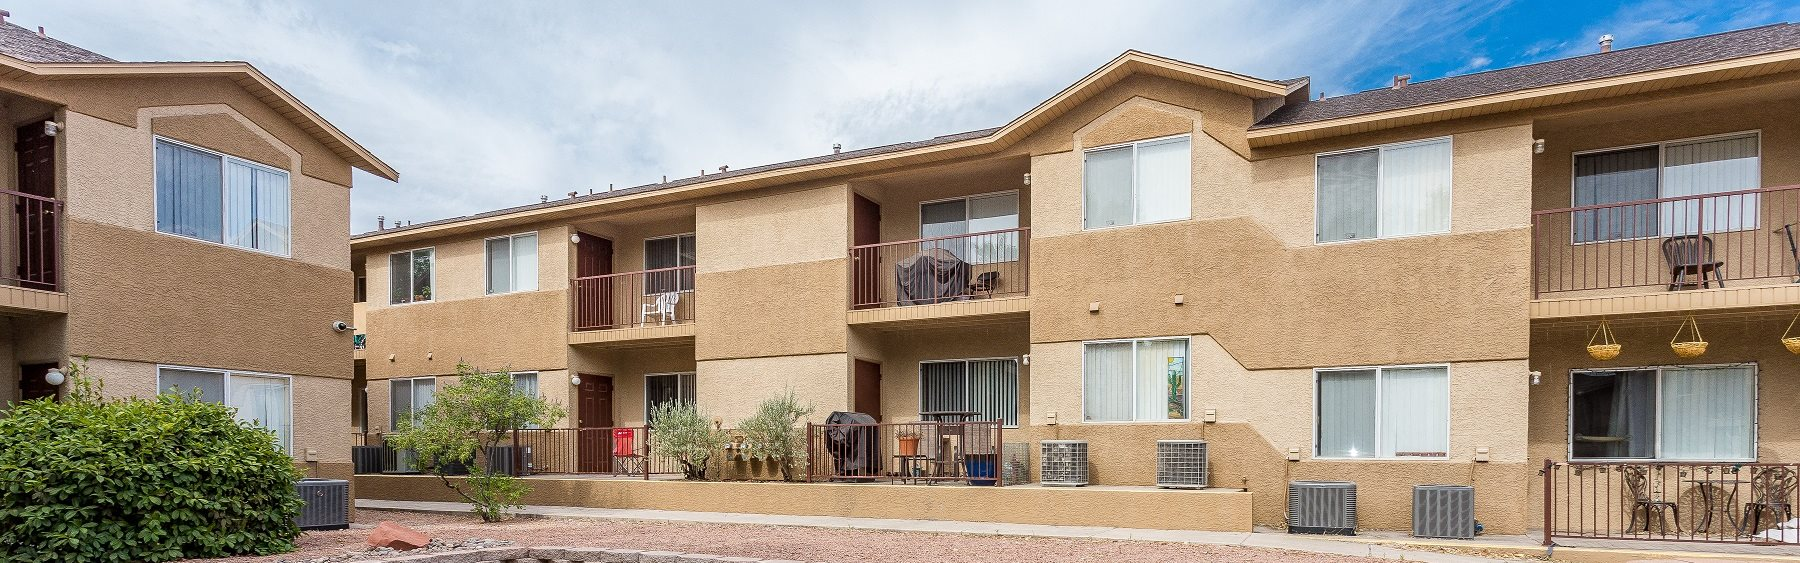 Courtside Apartments in Cottonwood, AZ